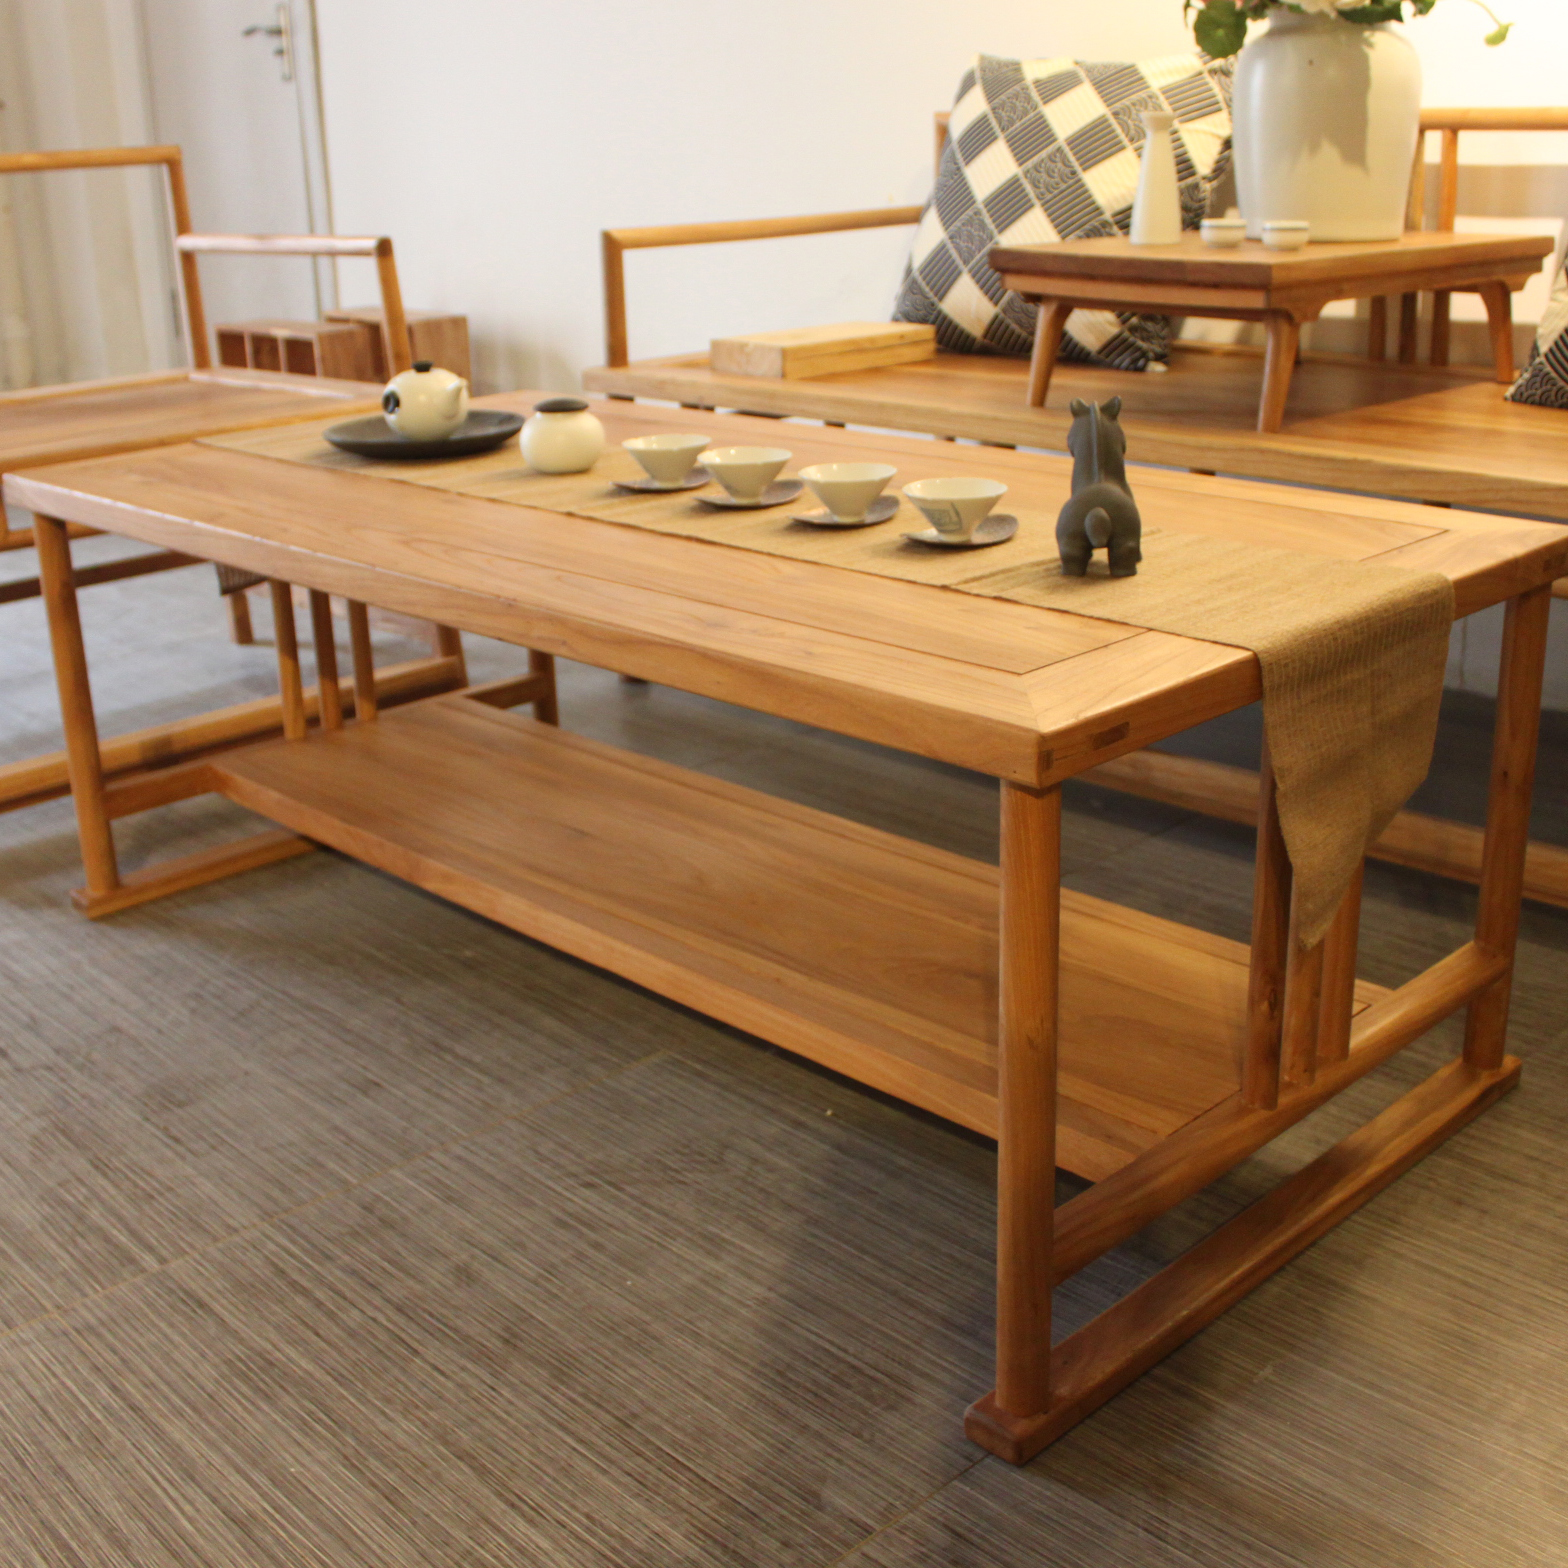 Nine Rooms Old Elm Zen Tea Room New Chinese Coffee Table Free Paint Simple  Solid Wood